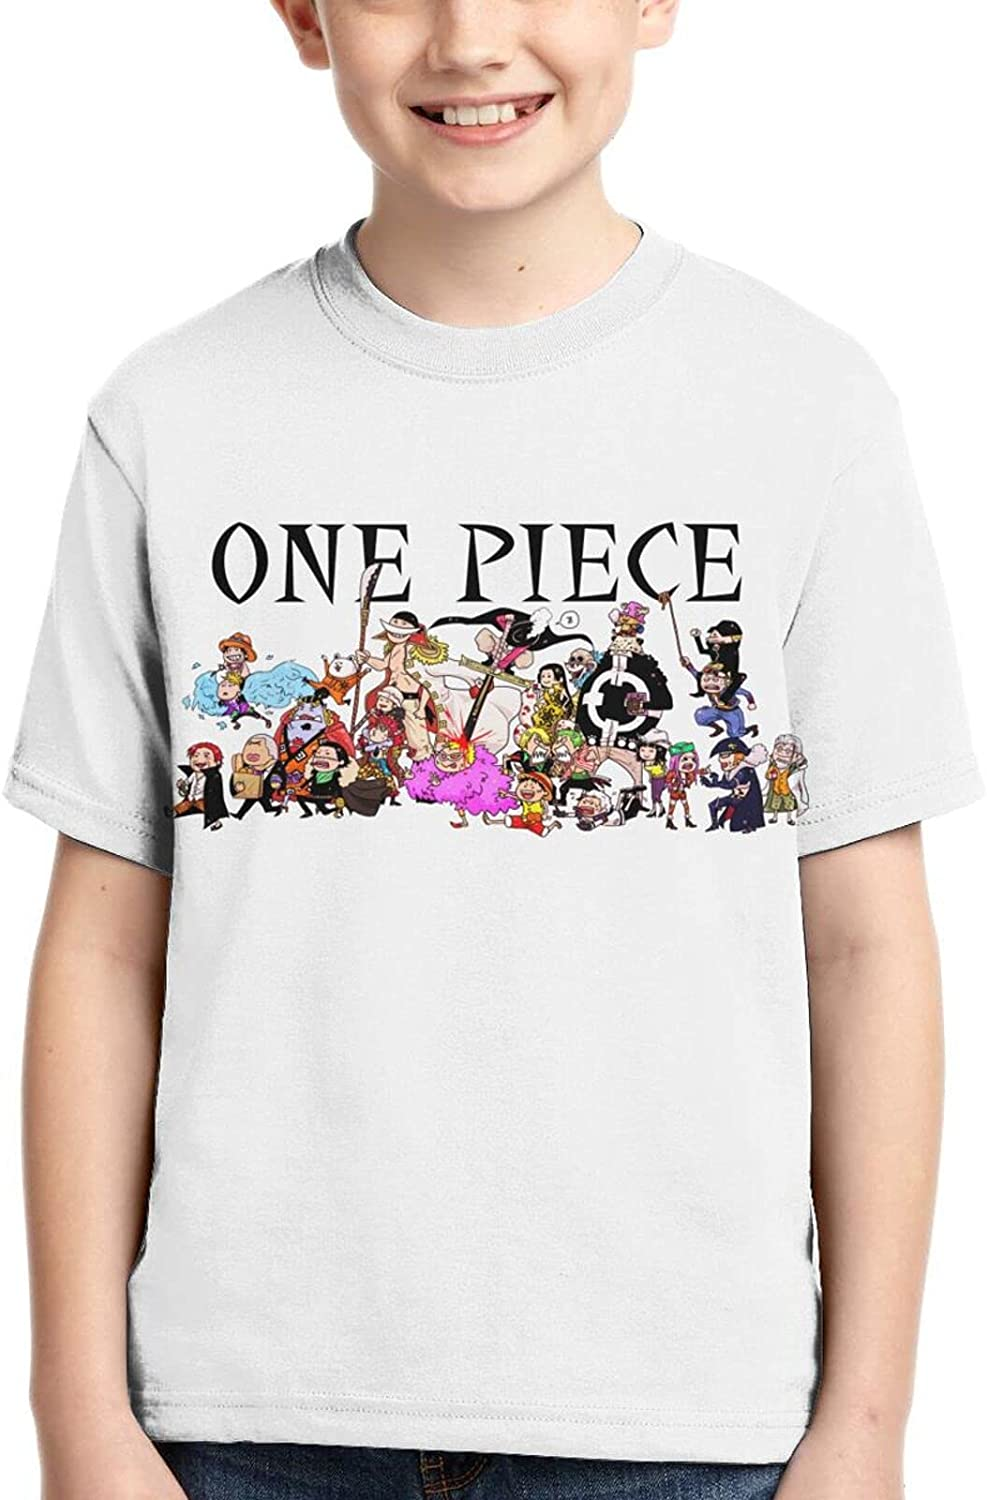 FANPANHE Deluxe One Piece Anime Fashion T-Shirts Free shipping Cool Trend Boy